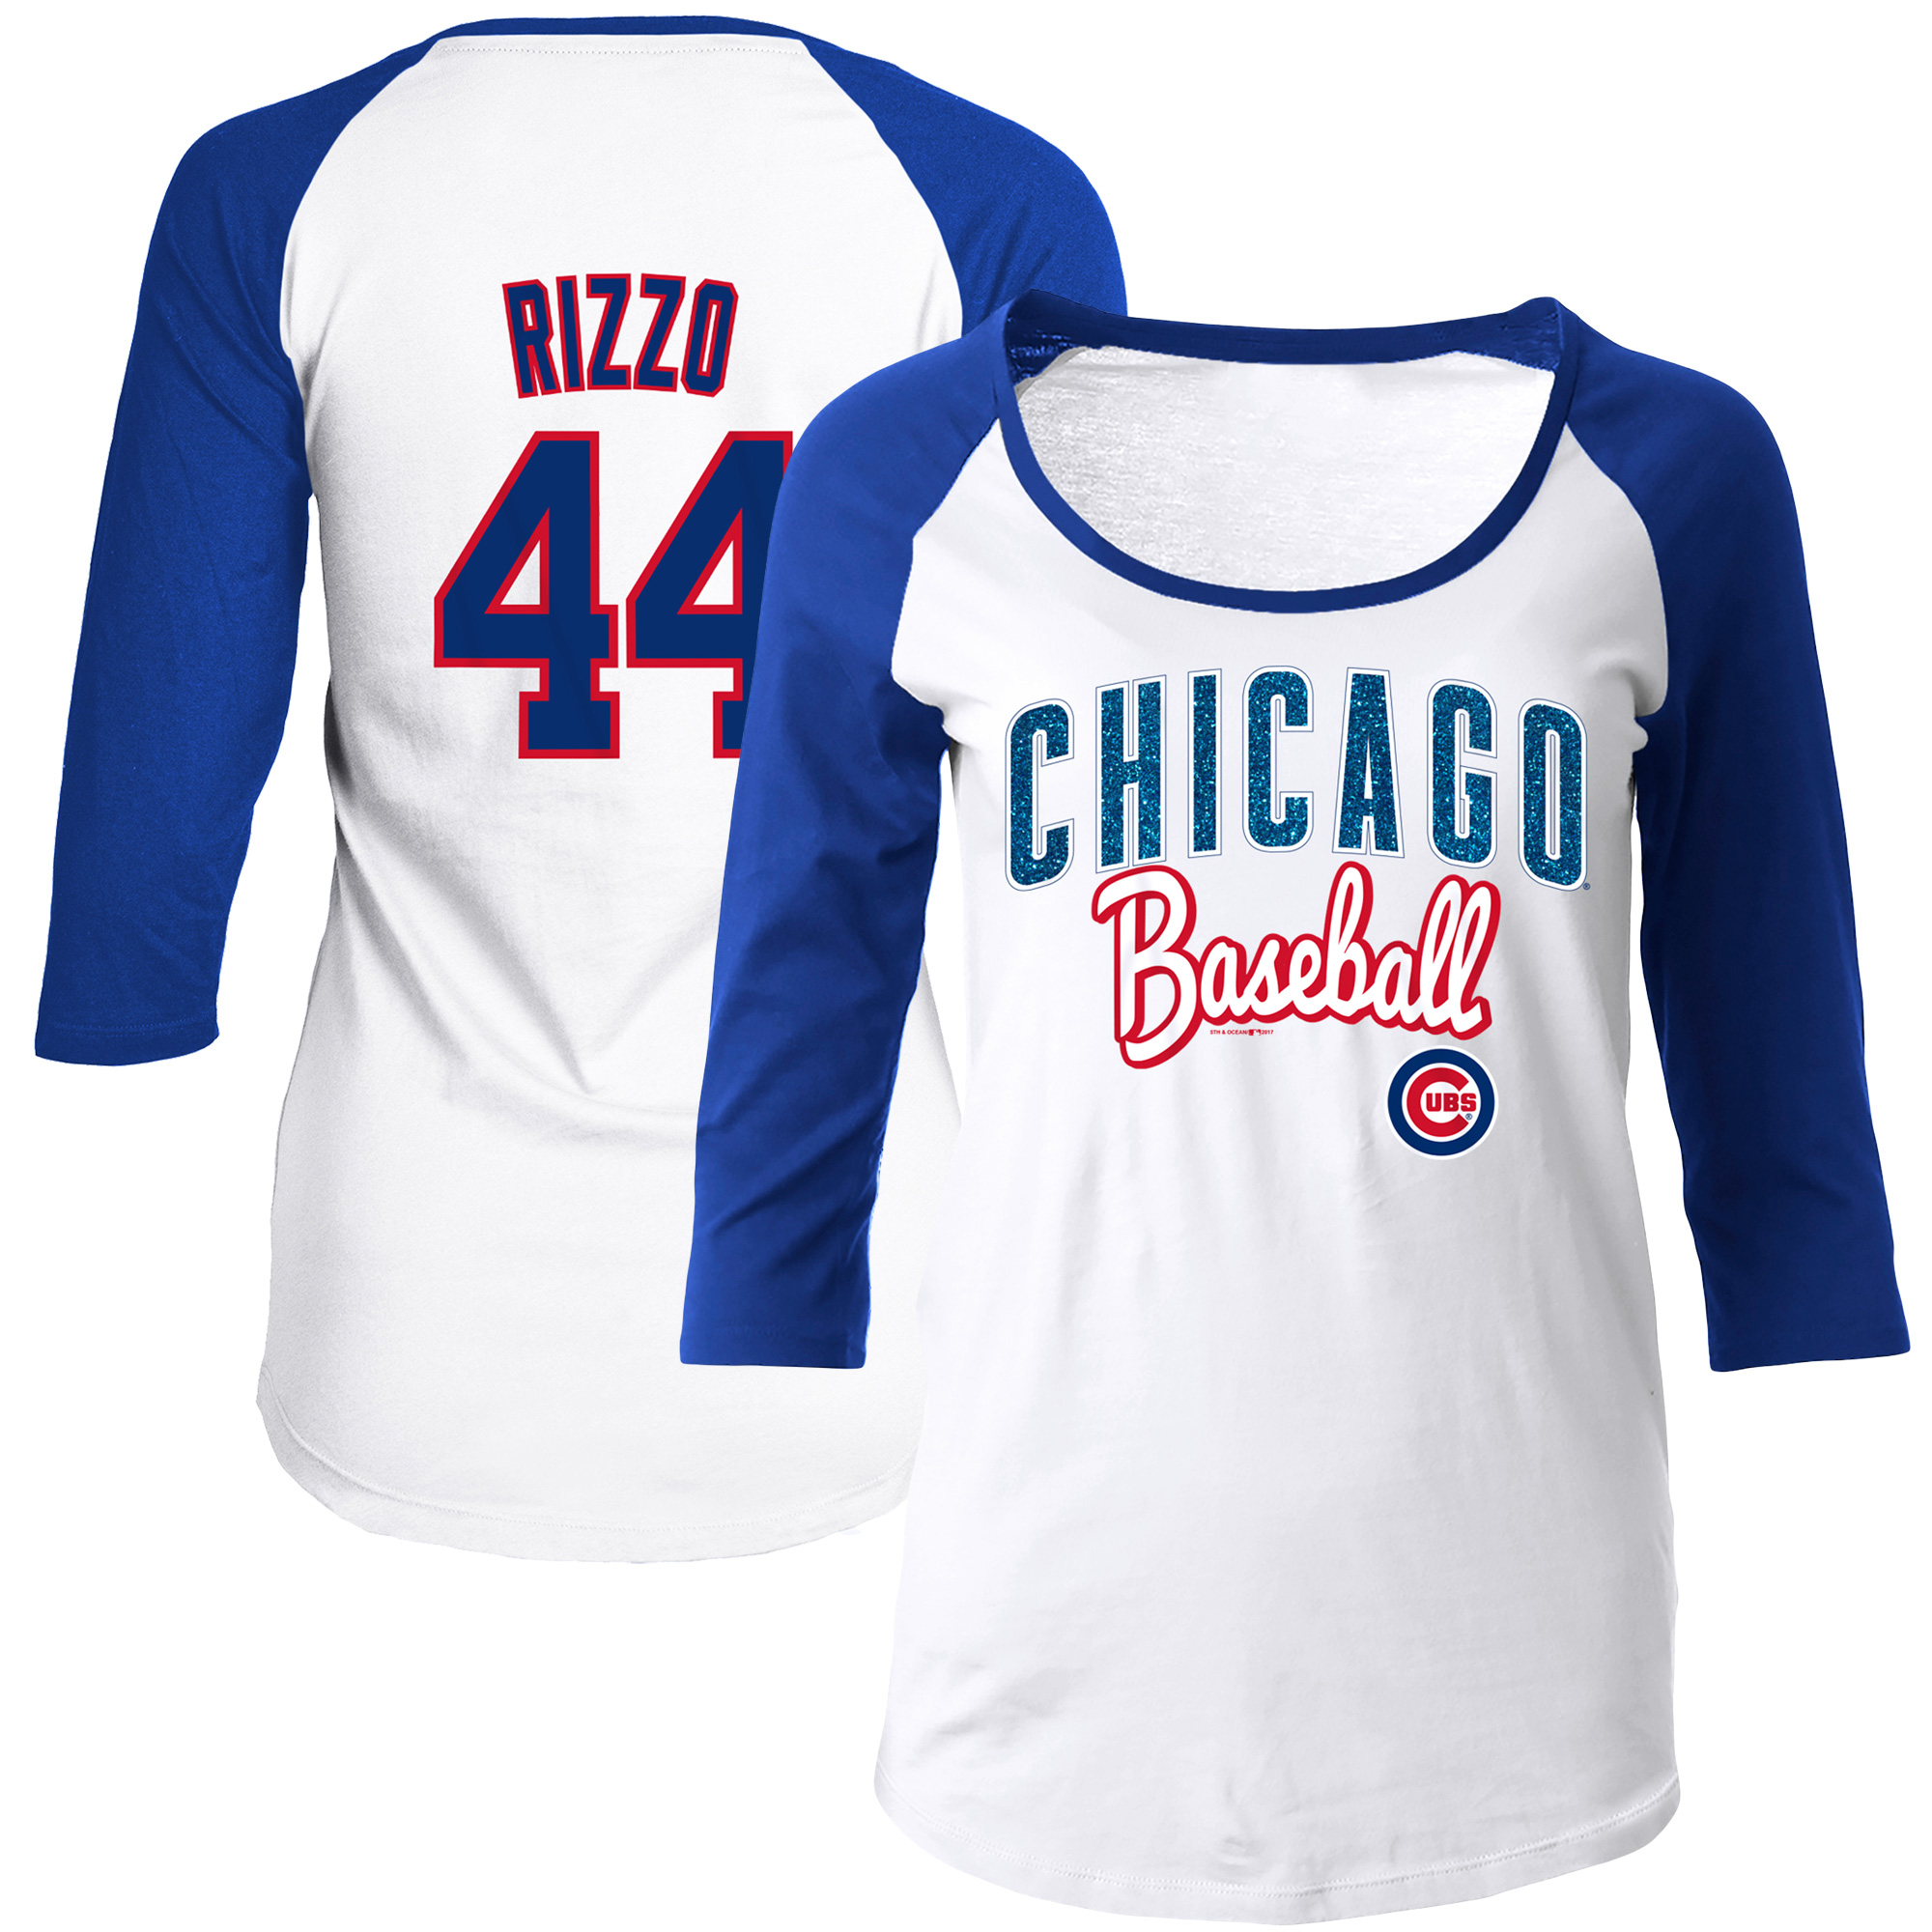 Anthony Rizzo Chicago Cubs 5th & Ocean by New Era Women's Glitter 3/4-Sleeve Raglan T-Shirt - White/Royal